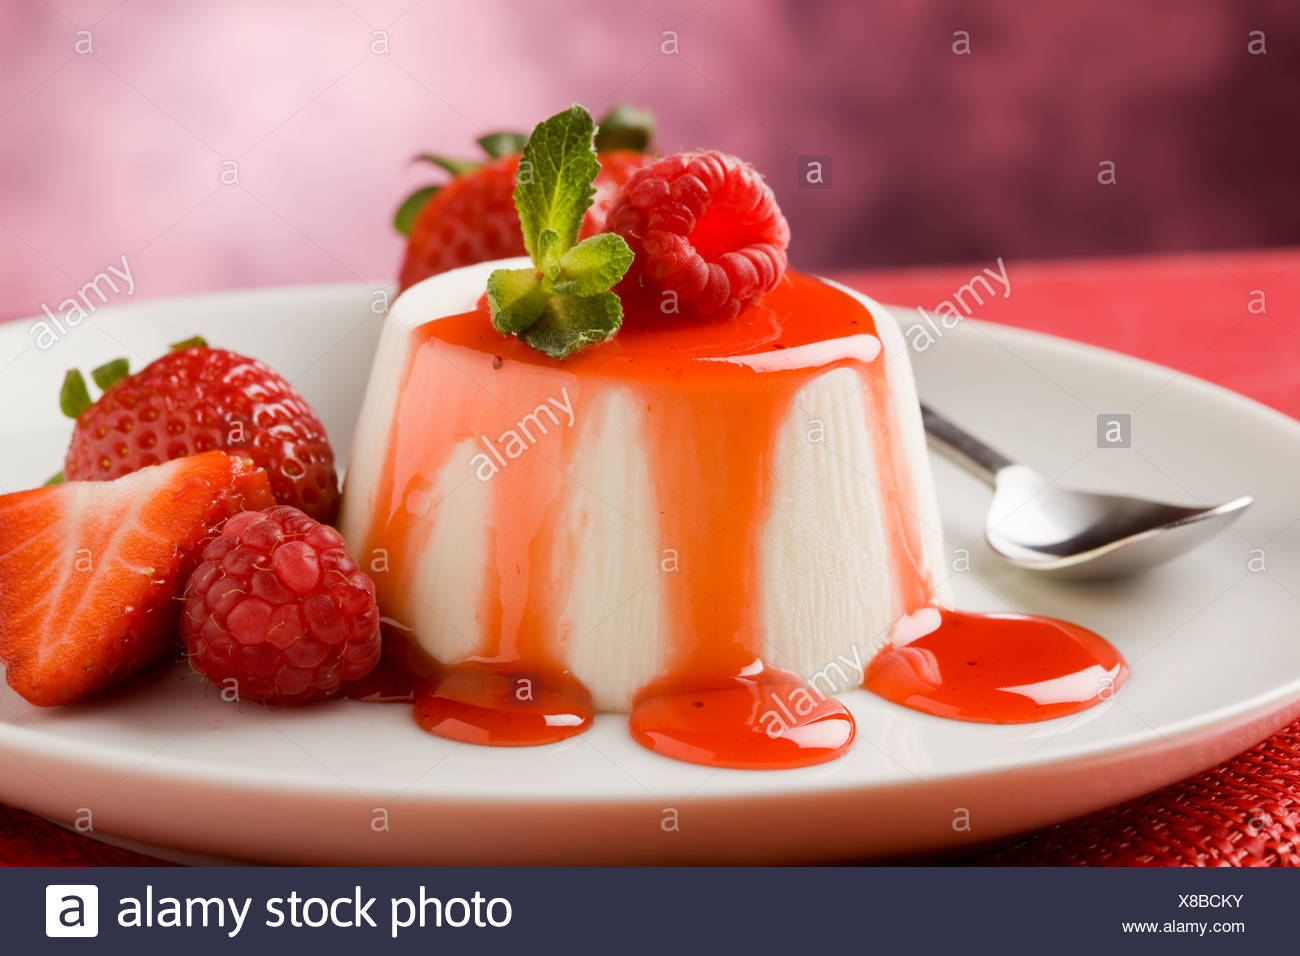 photo of italian panna cotta dessert with strawberry sirup and mint leaf - Stock Image